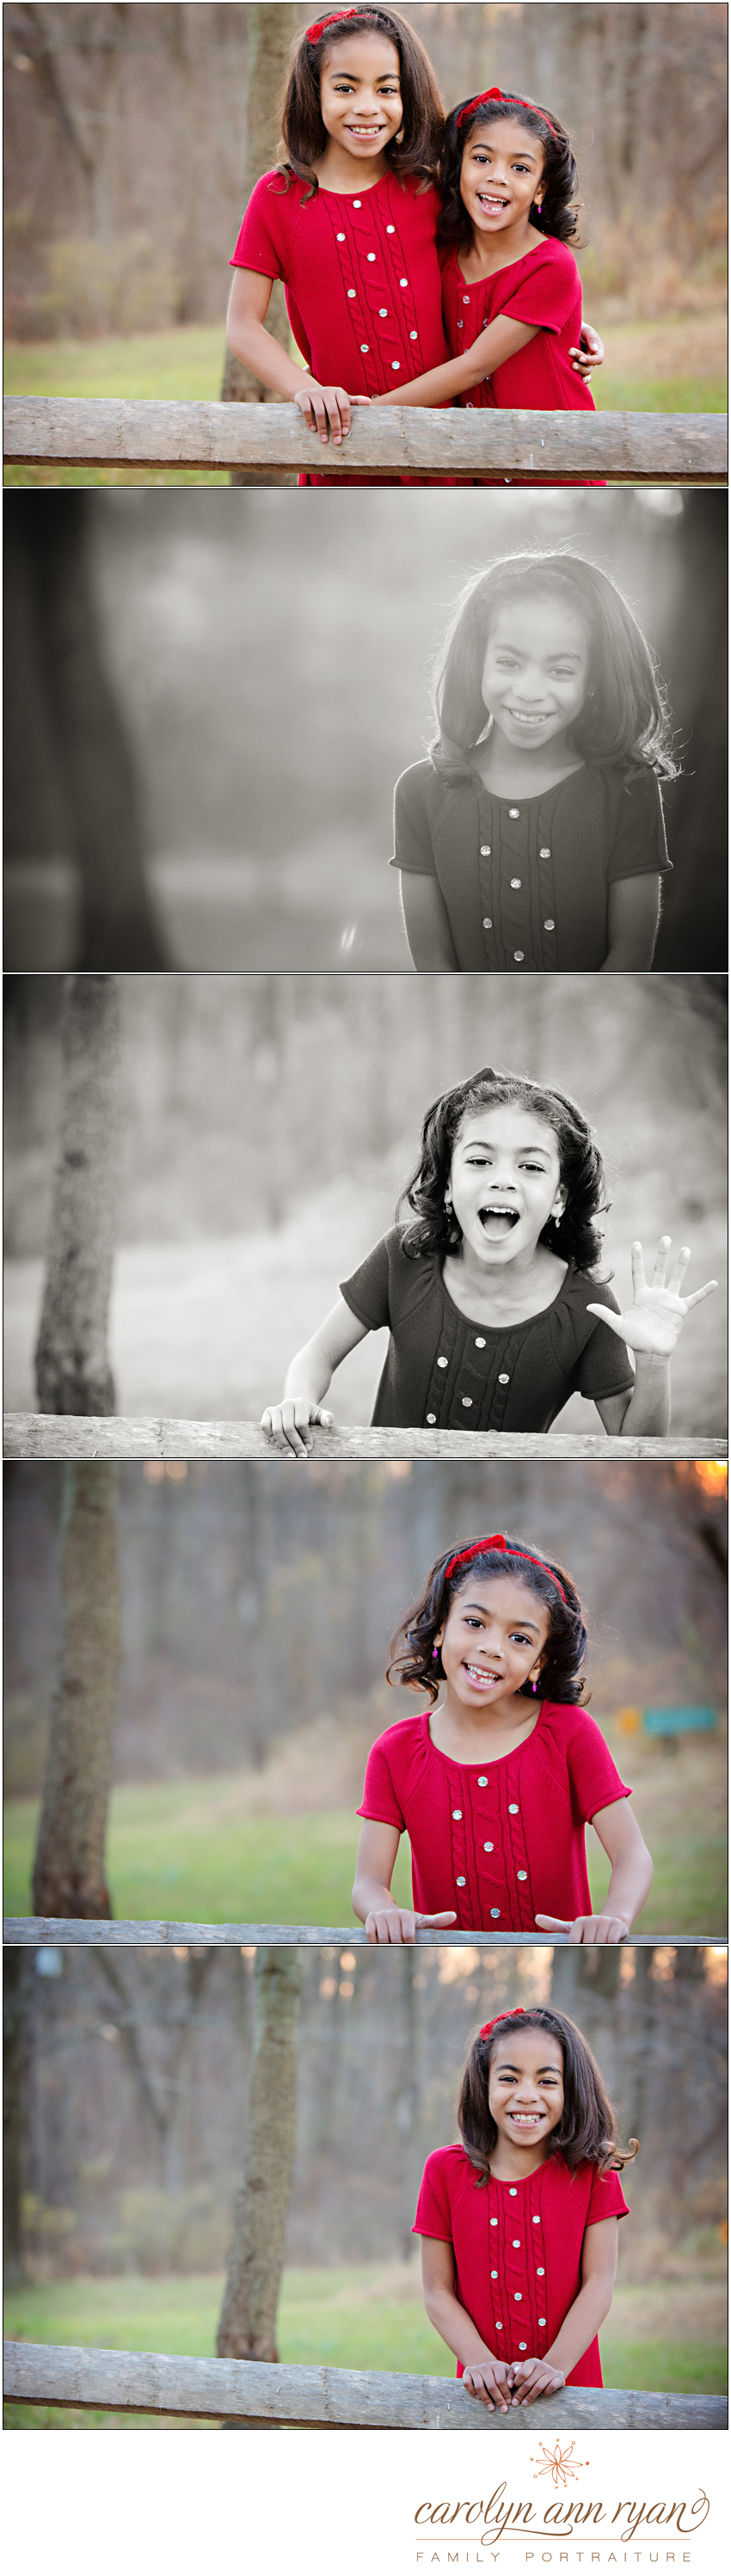 Dreamy North Carolina Childhood Photography Park Session by Carolyn Ann Ryan